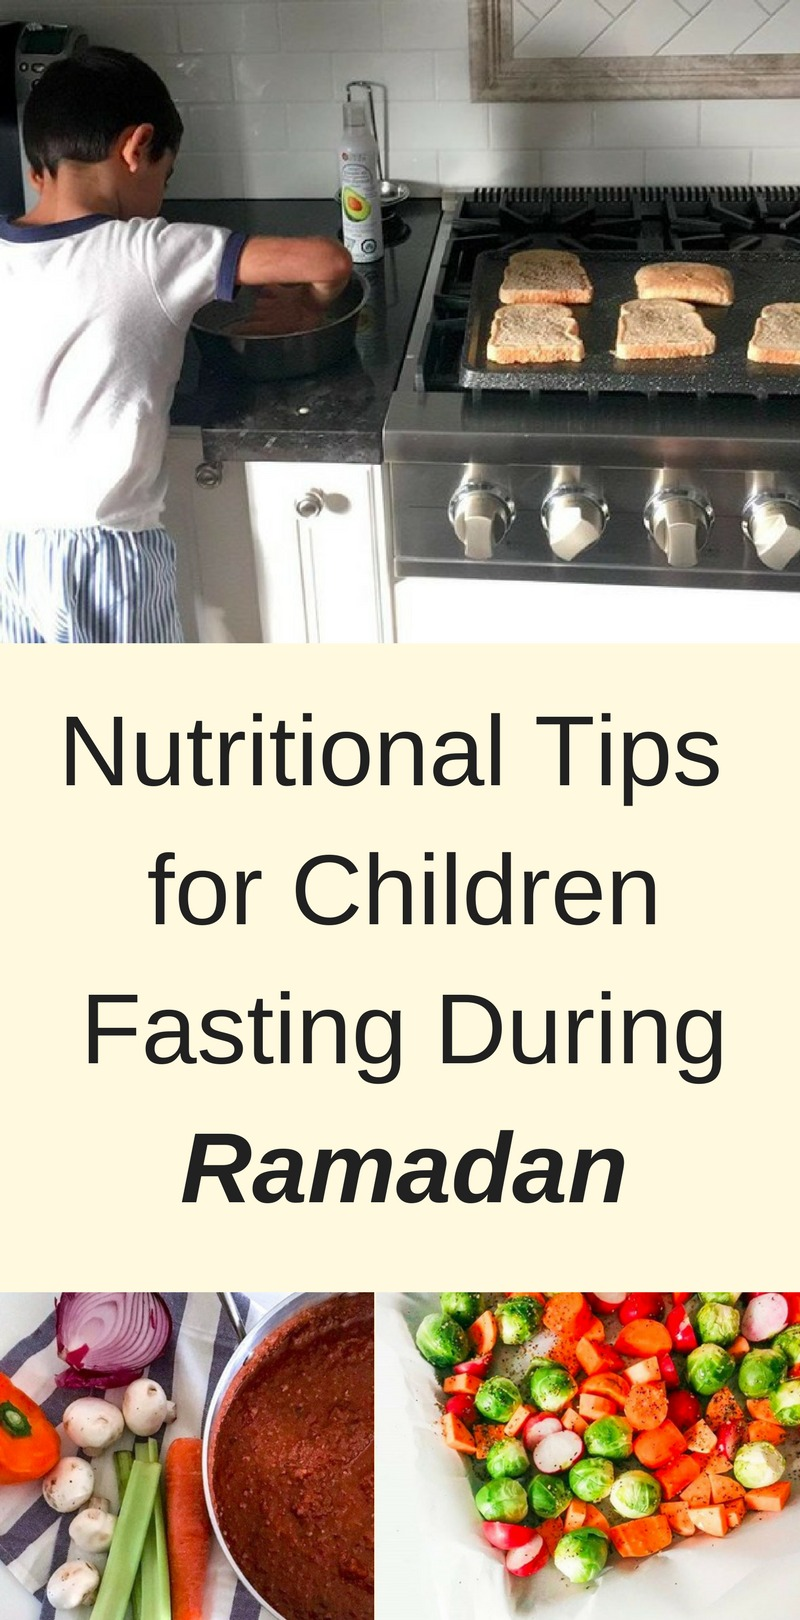 Nutritional Tip for Children Fasting During Ramadan